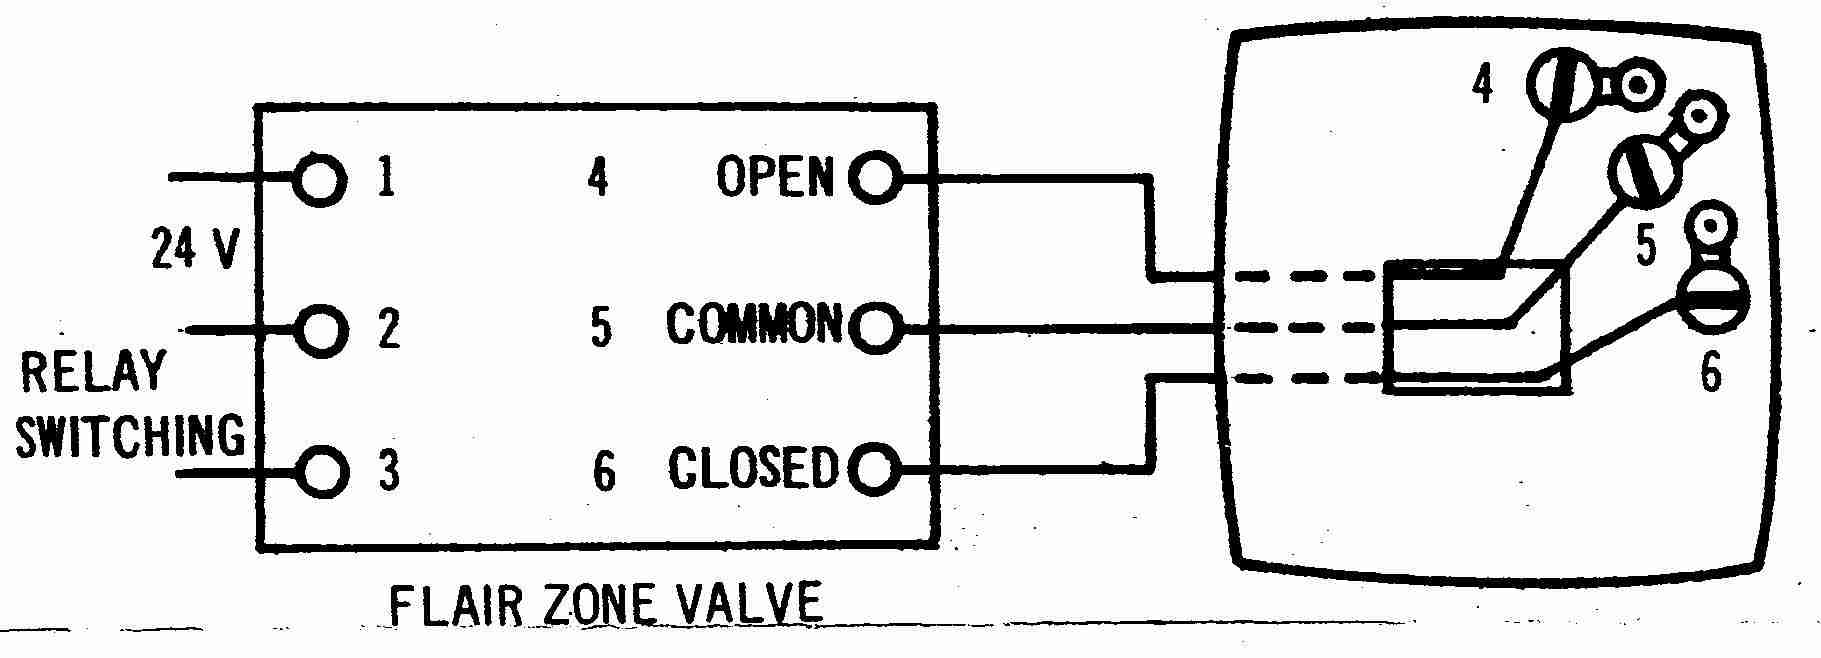 Flair3w_001_DJFc2 room thermostat wiring diagrams for hvac systems 3 wire wiring diagram at soozxer.org